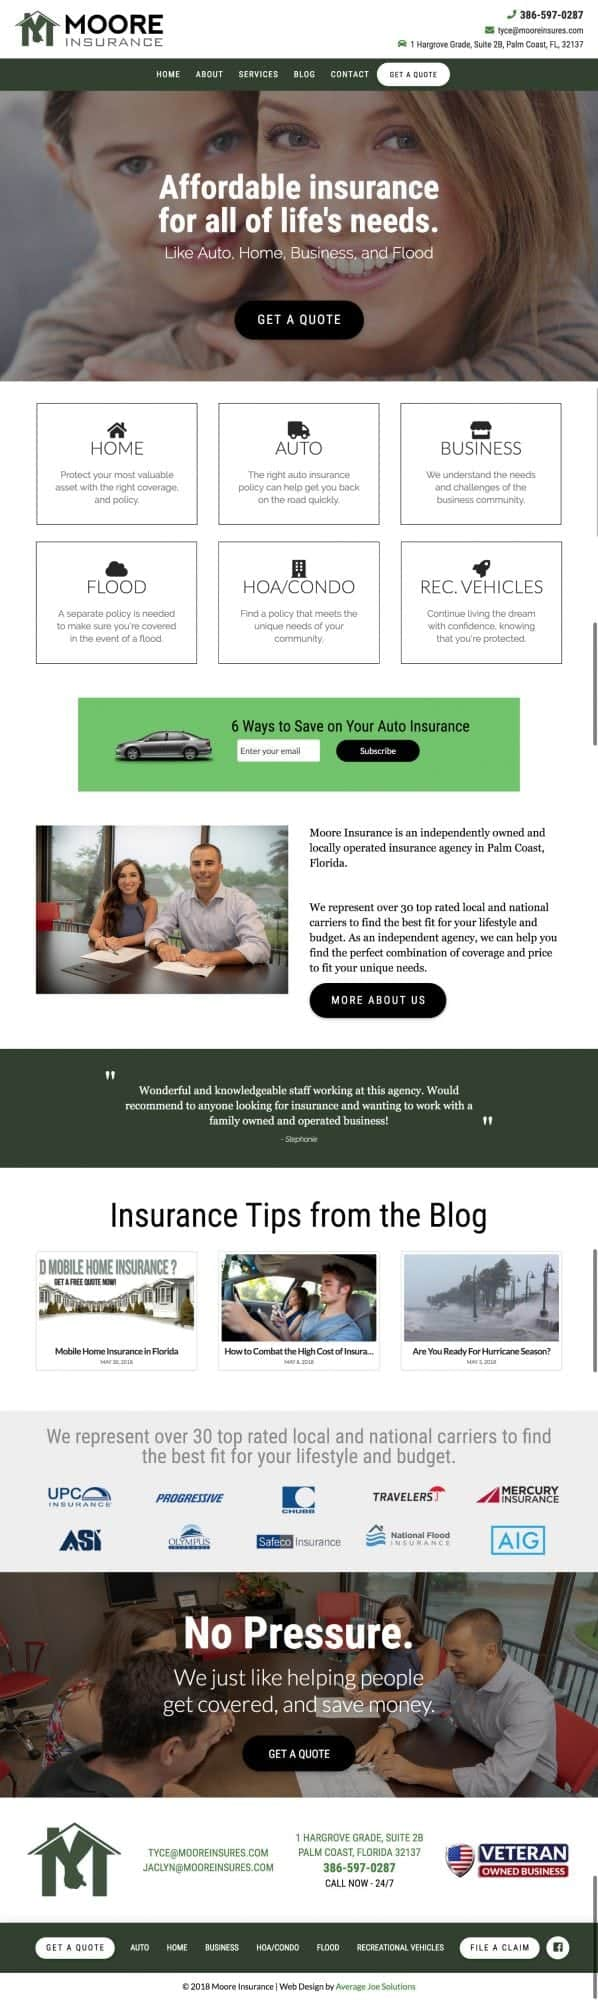 new website for moore insurance